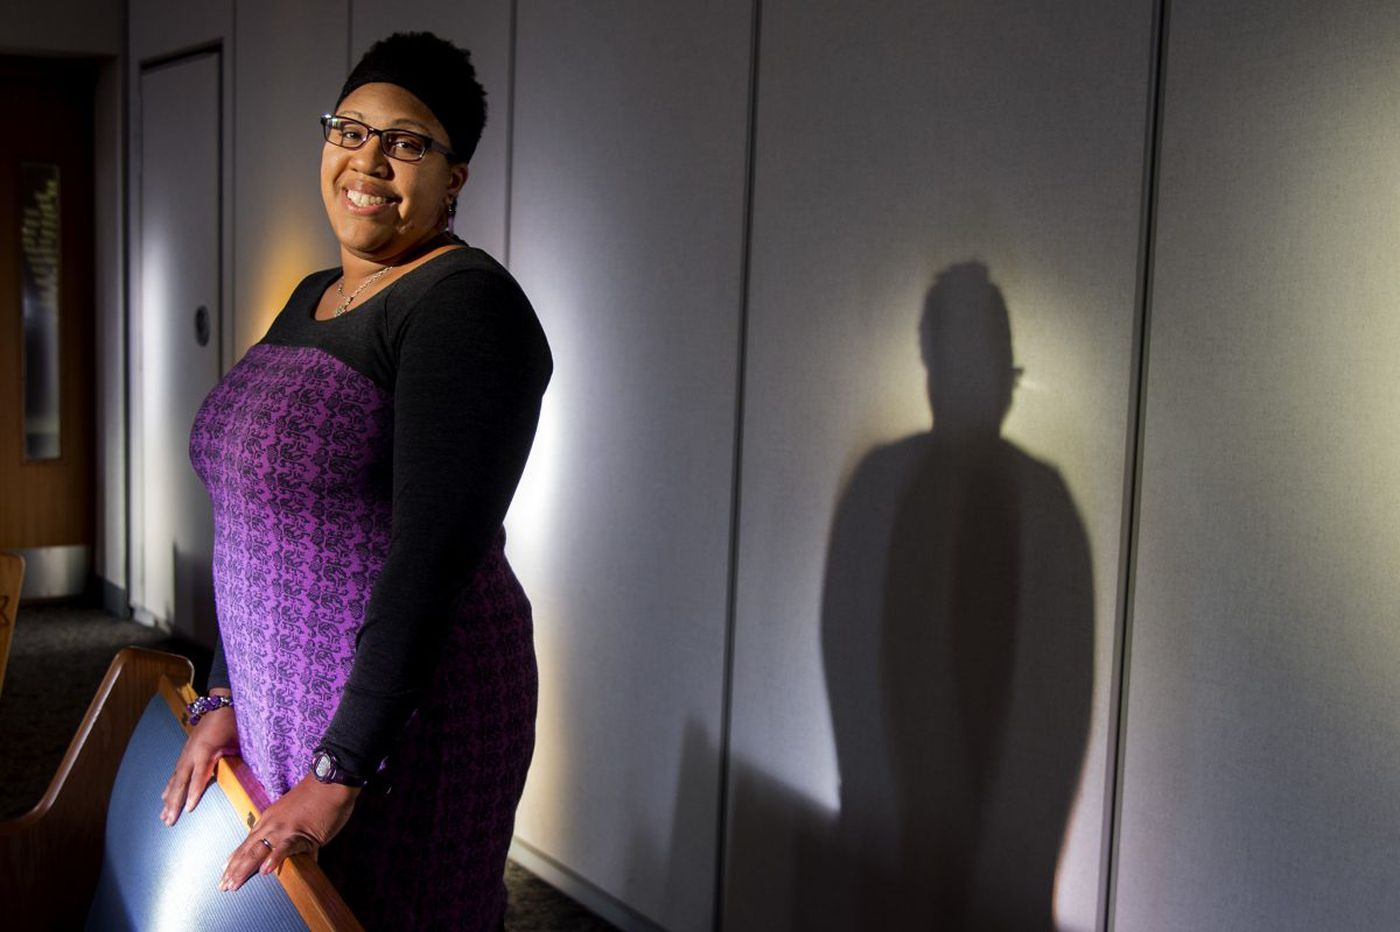 She's an African American rabbi with Southern Baptist roots